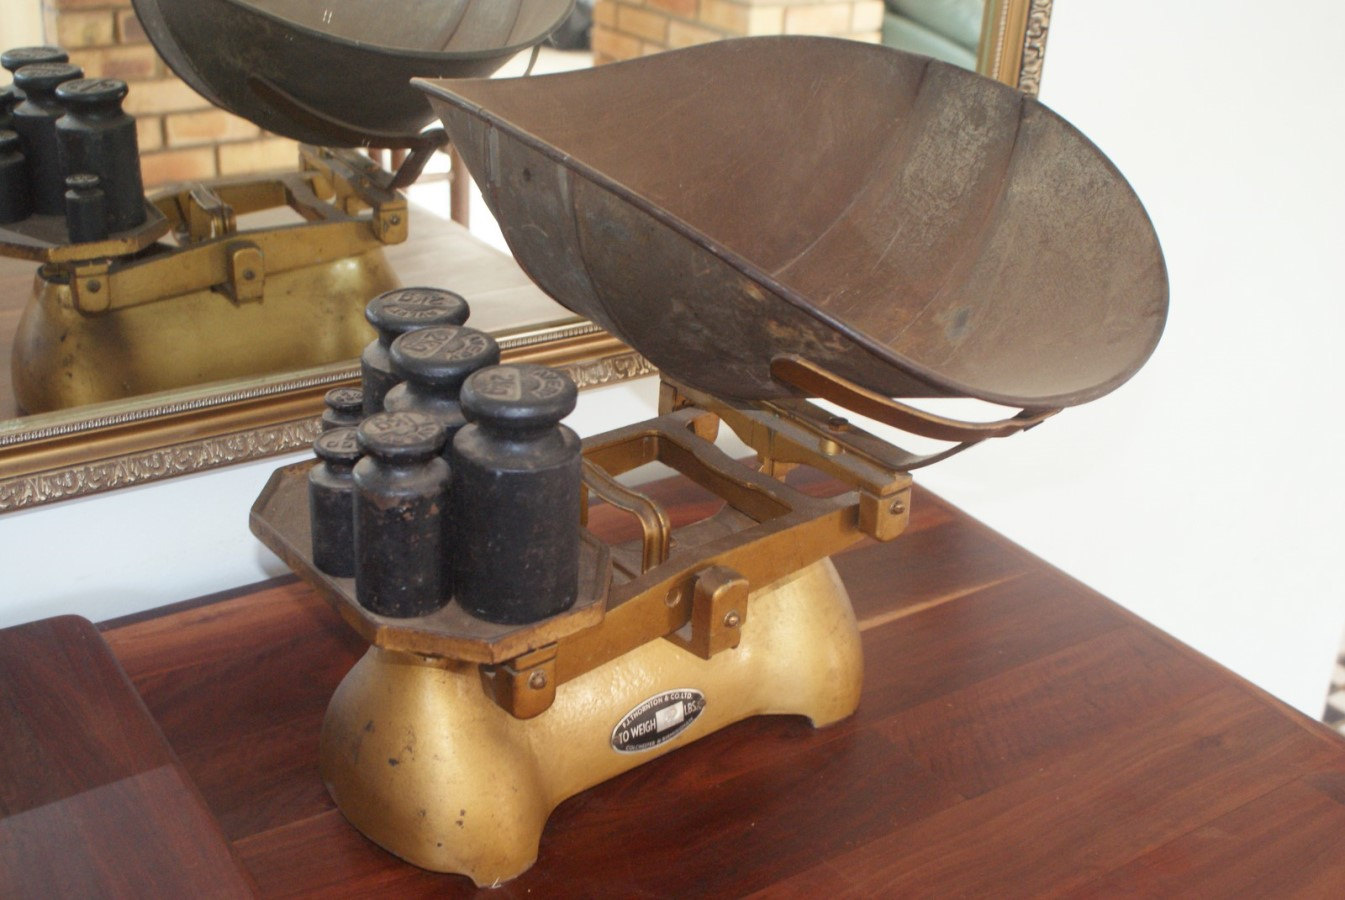 Scale for sale. FJ Thornton Viking scale  Probable 1940-1950's Offers above R2500